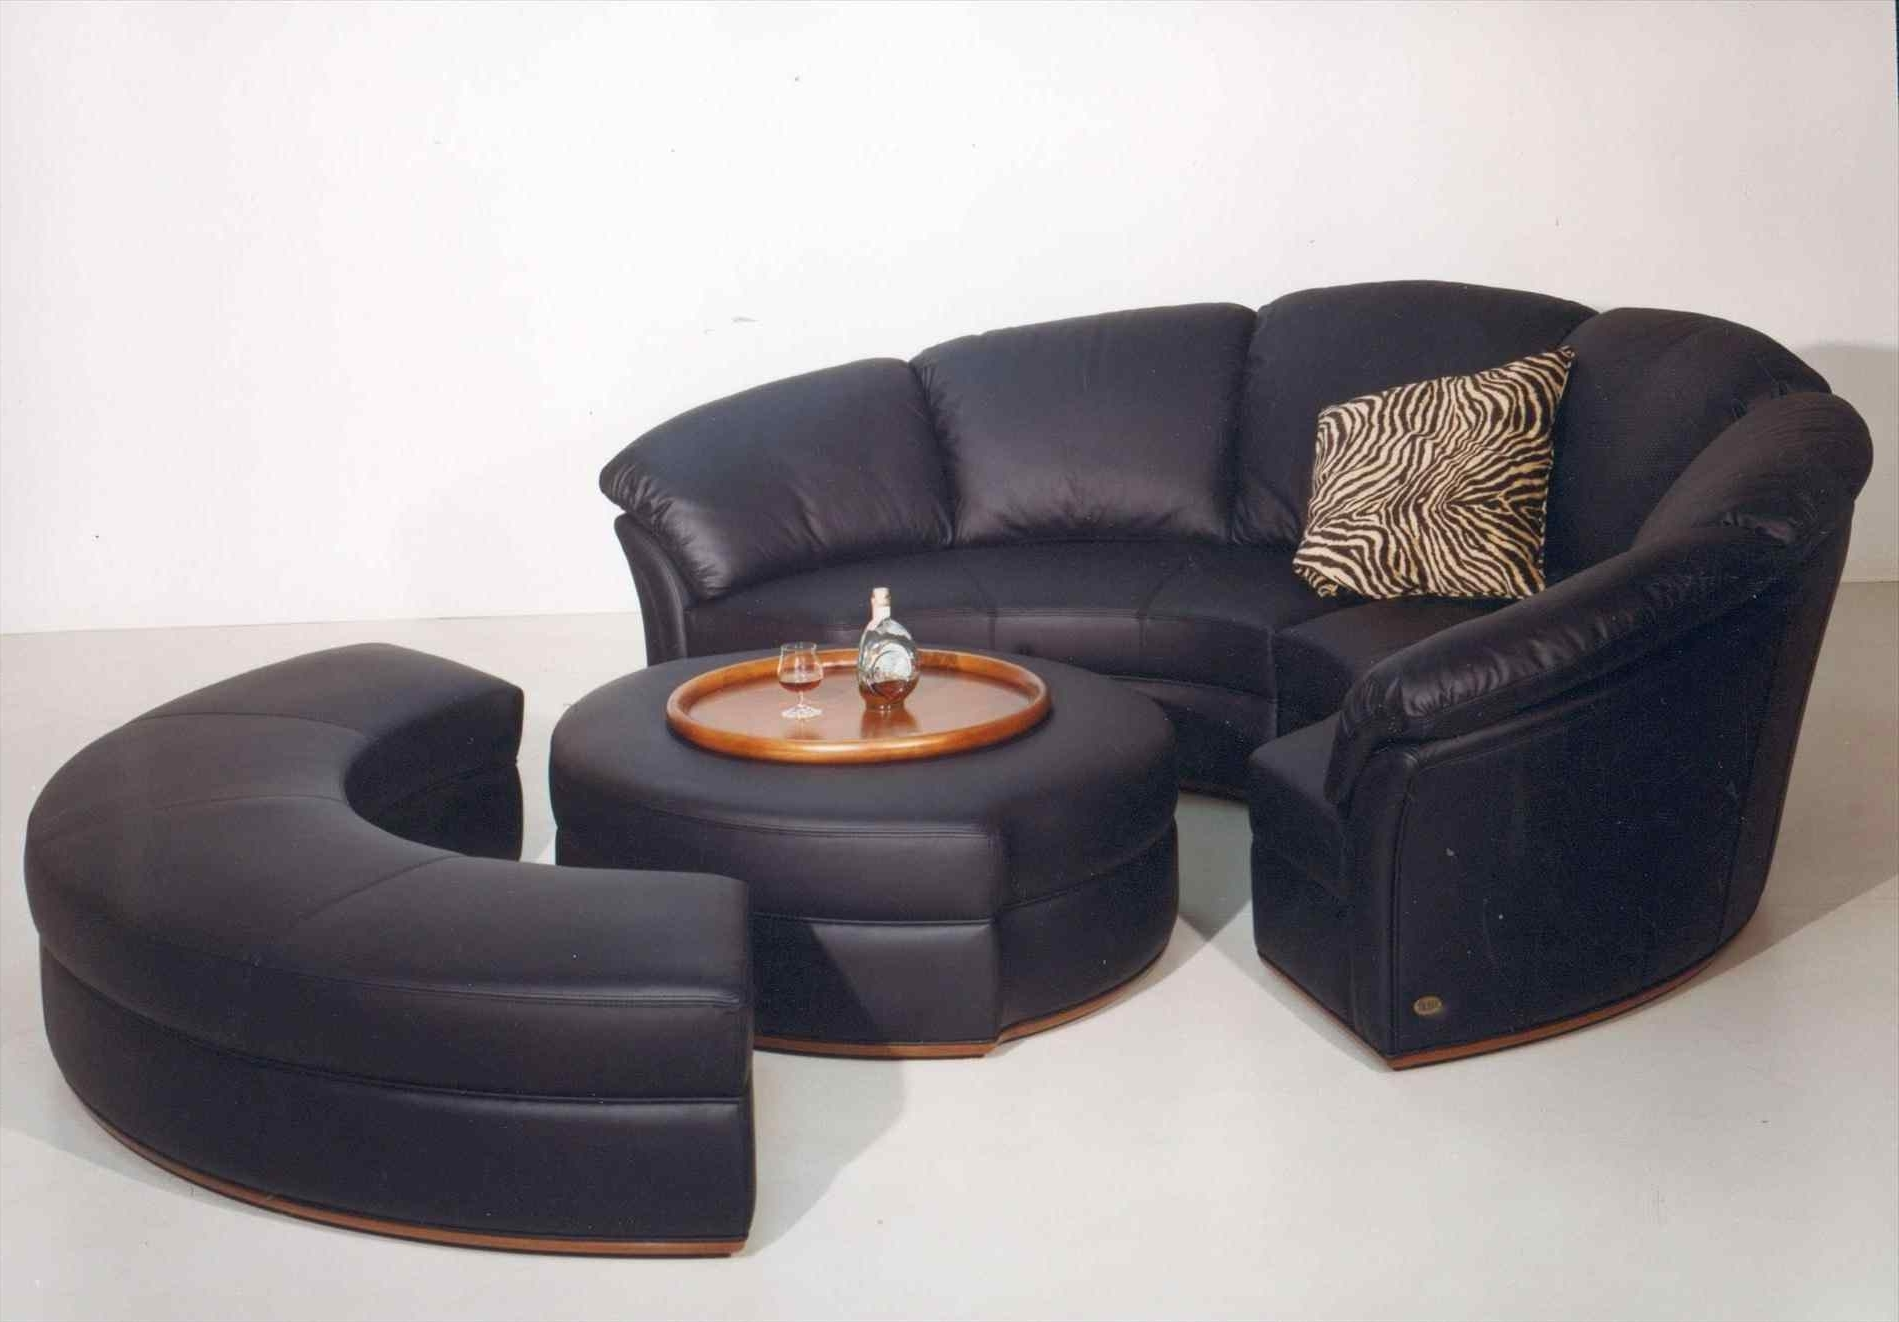 Round Sofas In Well Known Sofas : 3 Seater Sofa Contemporary Sofa Round Couch Chair Circular (View 11 of 20)